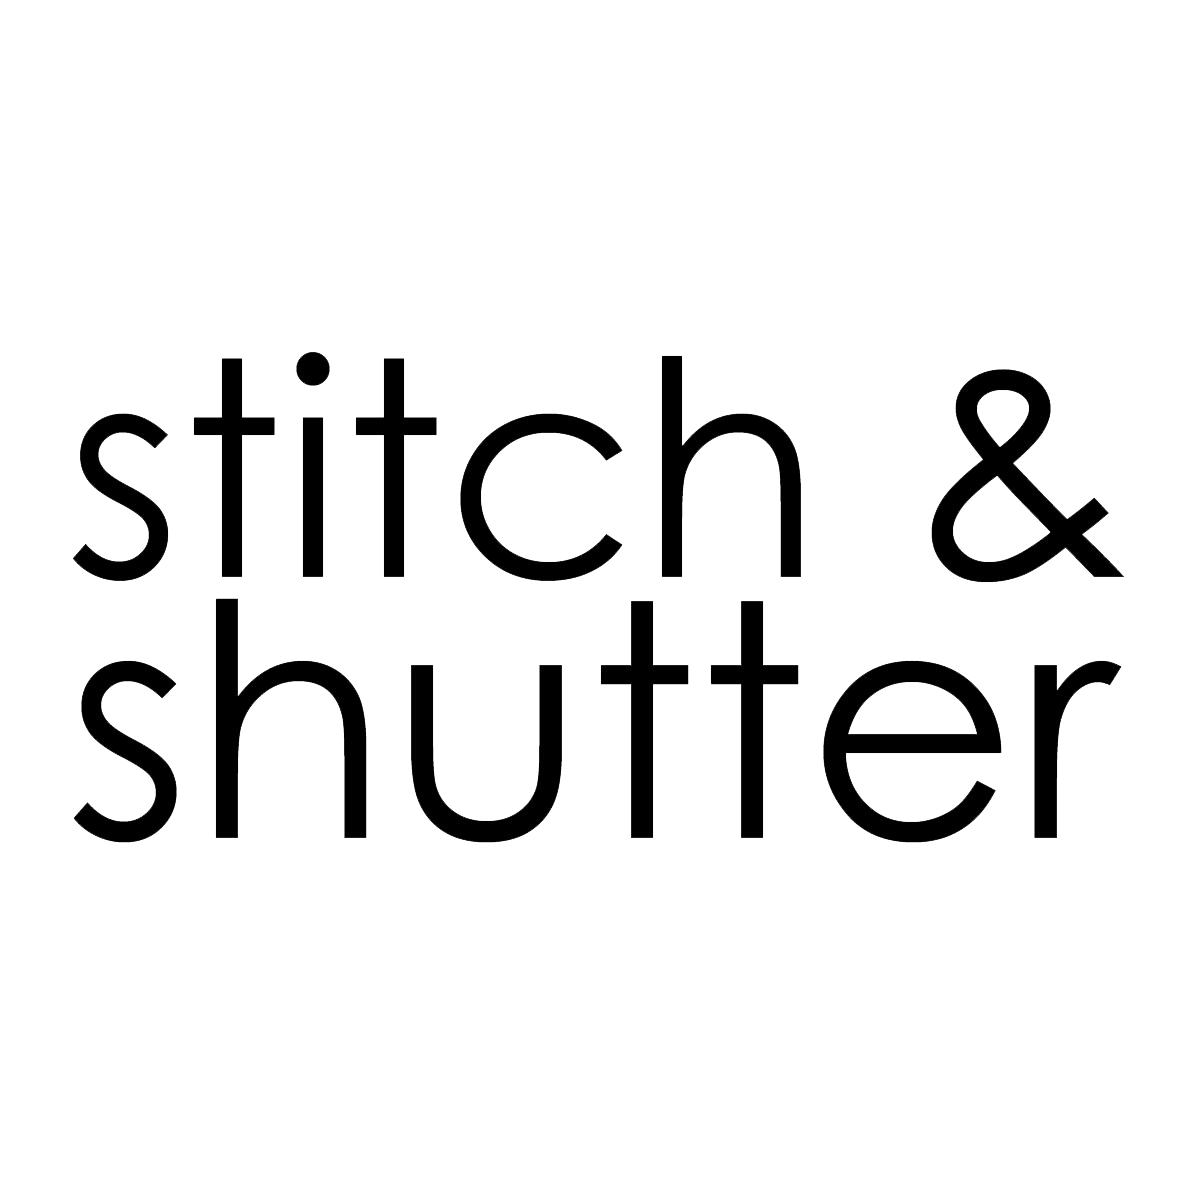 Stitch & Shutter Leather Goods